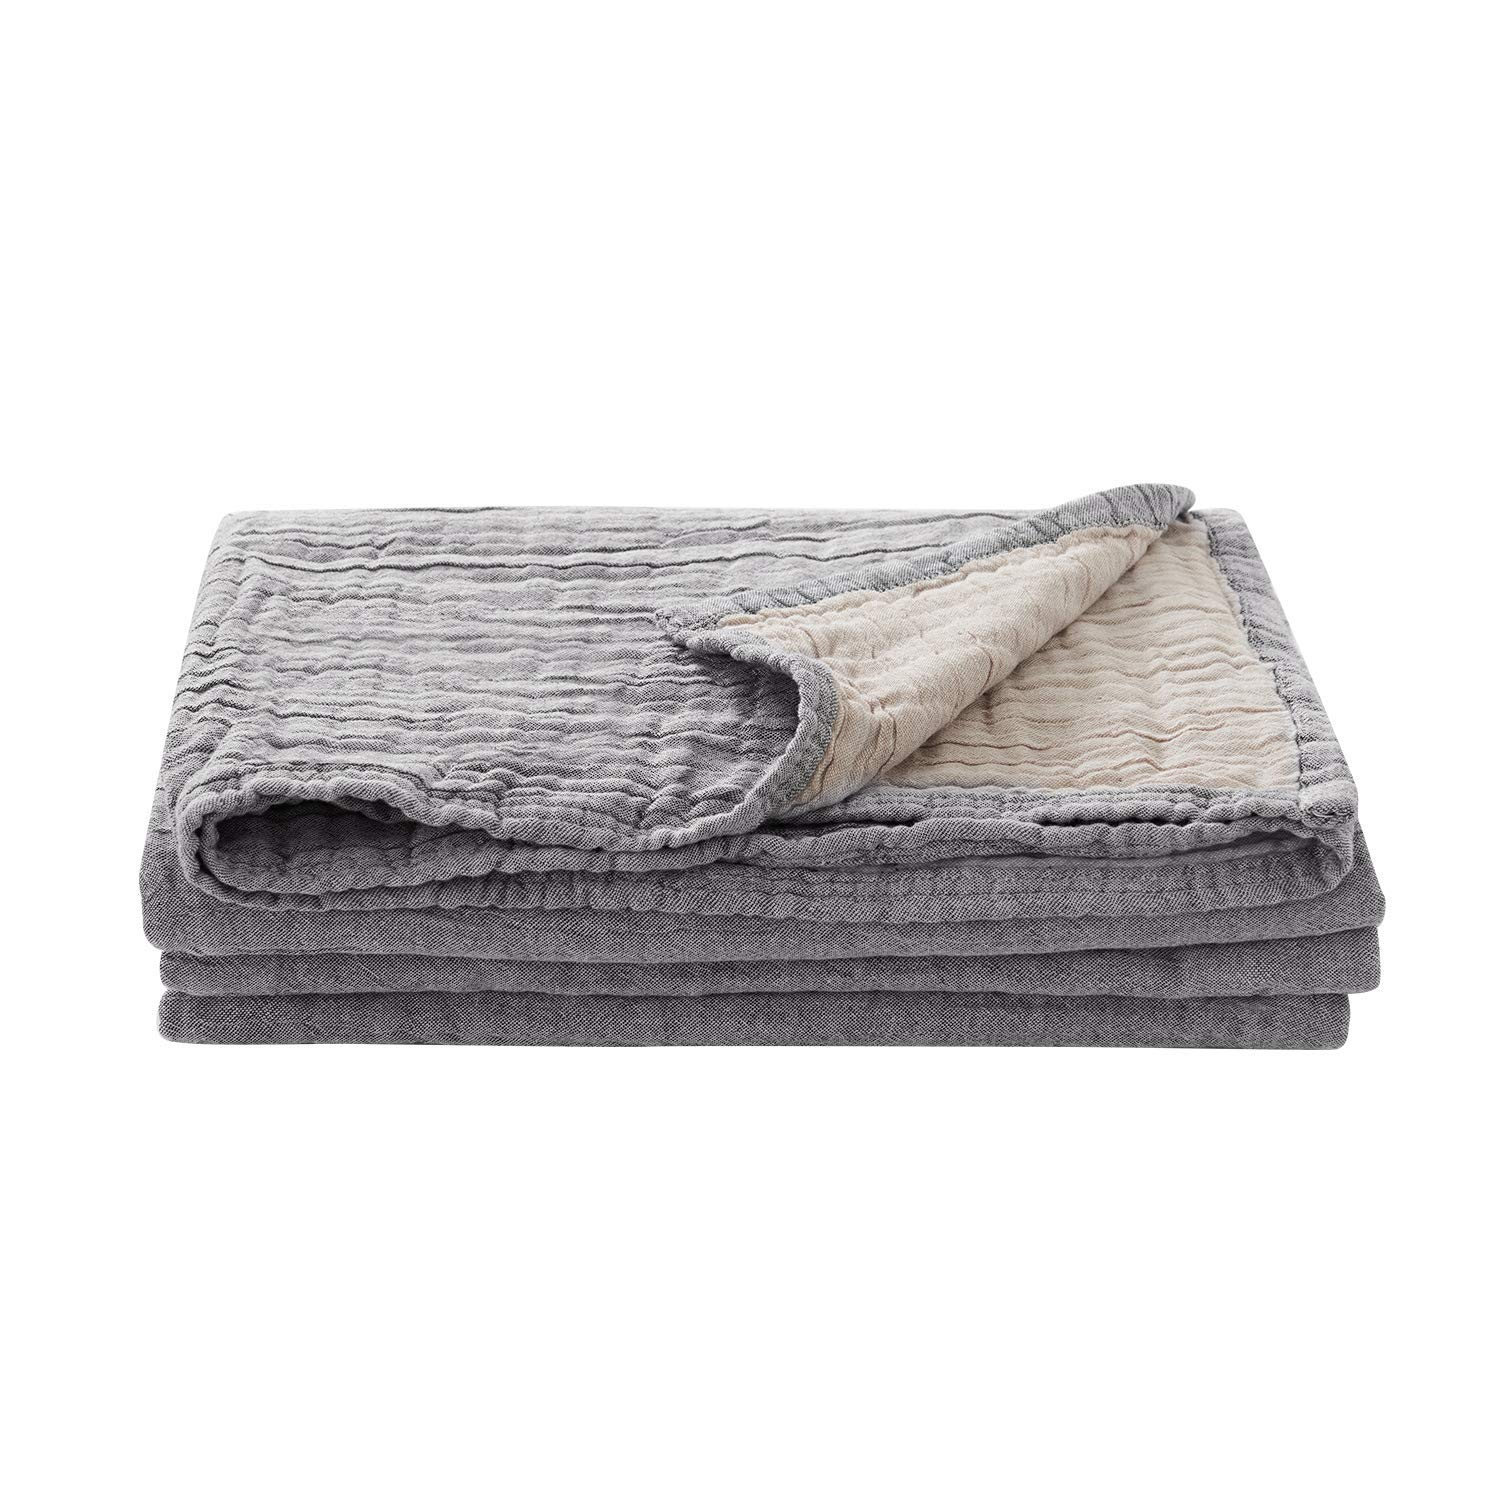 Joywell 100% Premium Breathable Cotton Thermal Blanket-Super Soft, Cozy and Warm for All Seasons, for Bed&Couch (D-Light Gray, Twin)